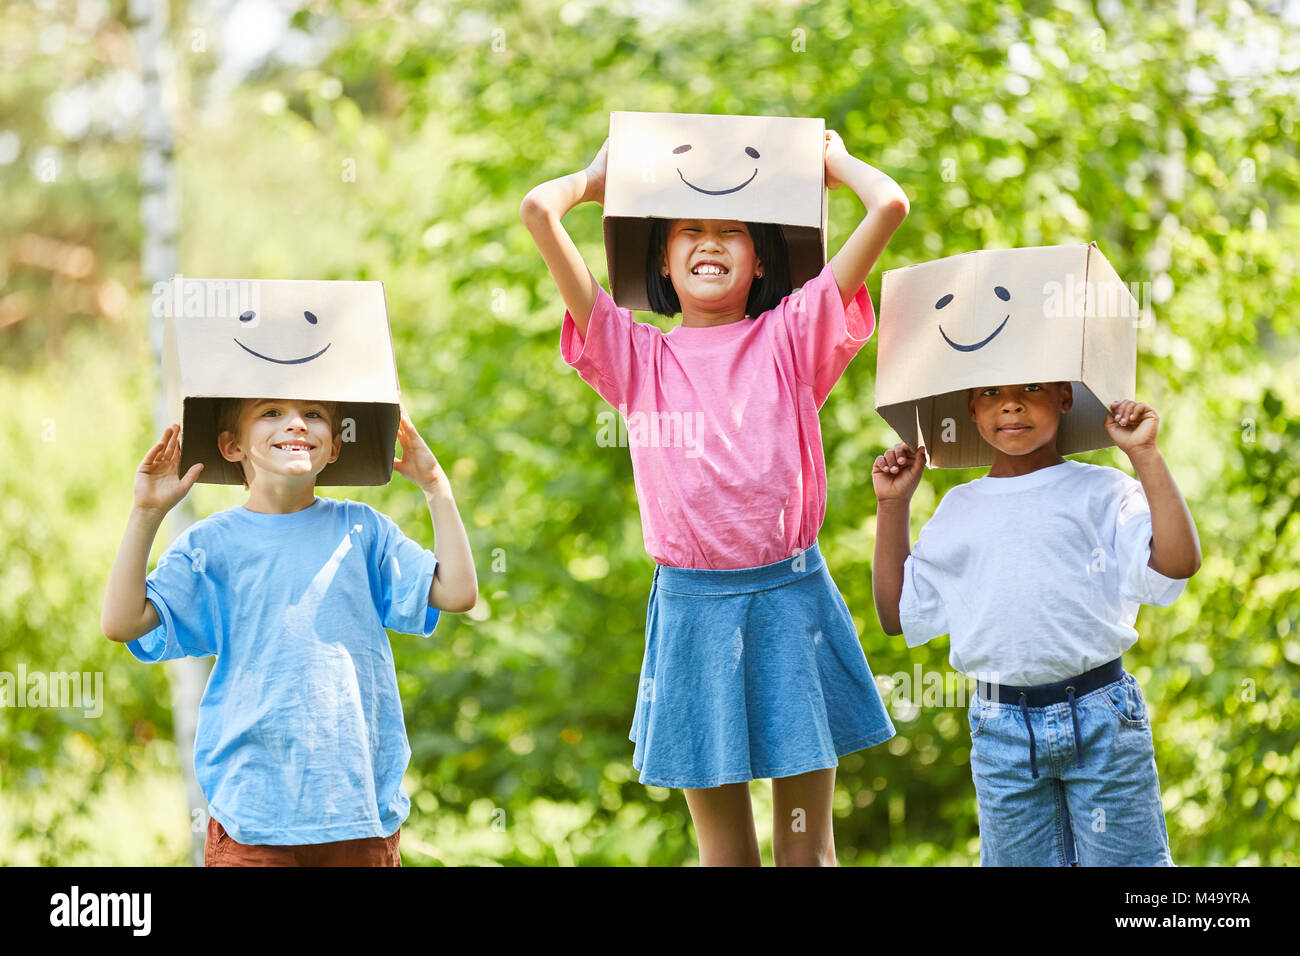 Creative kids play with funny cardboard boxes on their heads in nature - Stock Image